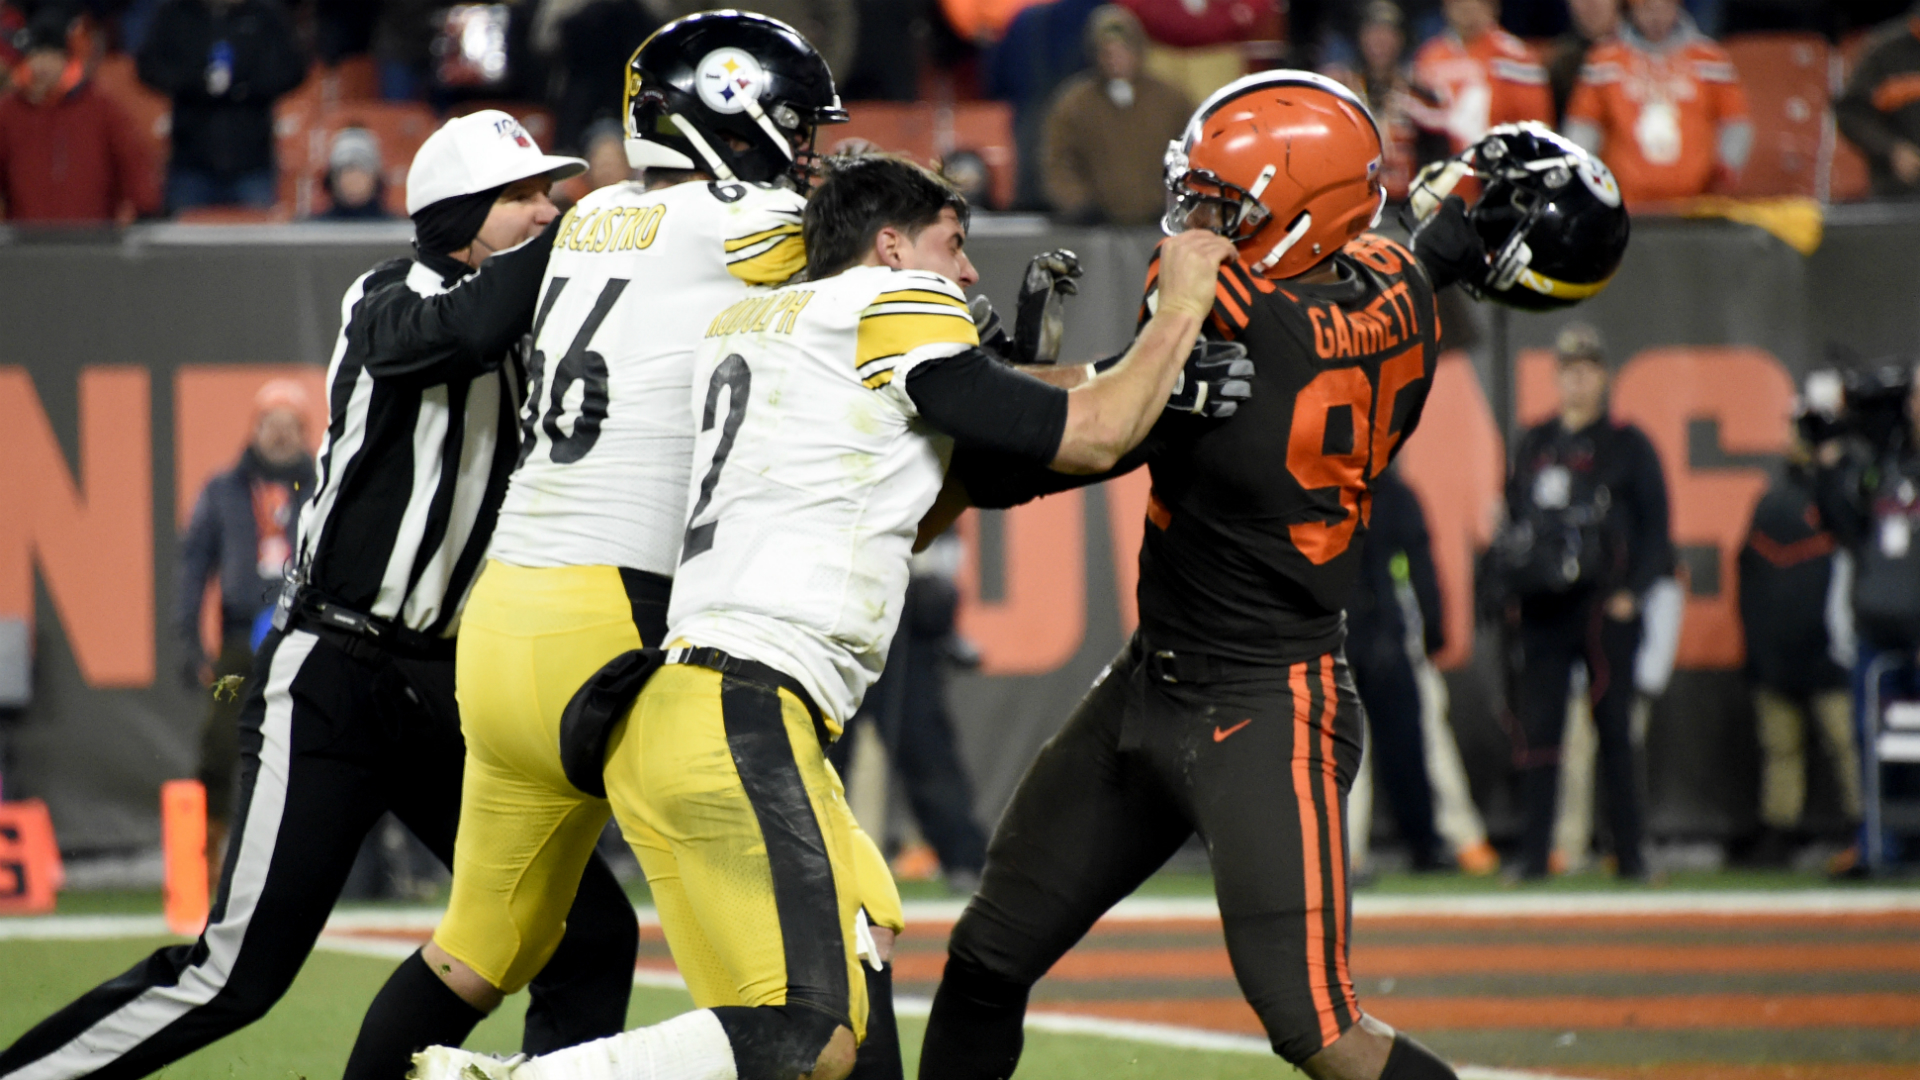 Revisiting the Myles Garrett-Mason Rudolph helmet incident on Thursday Night Football